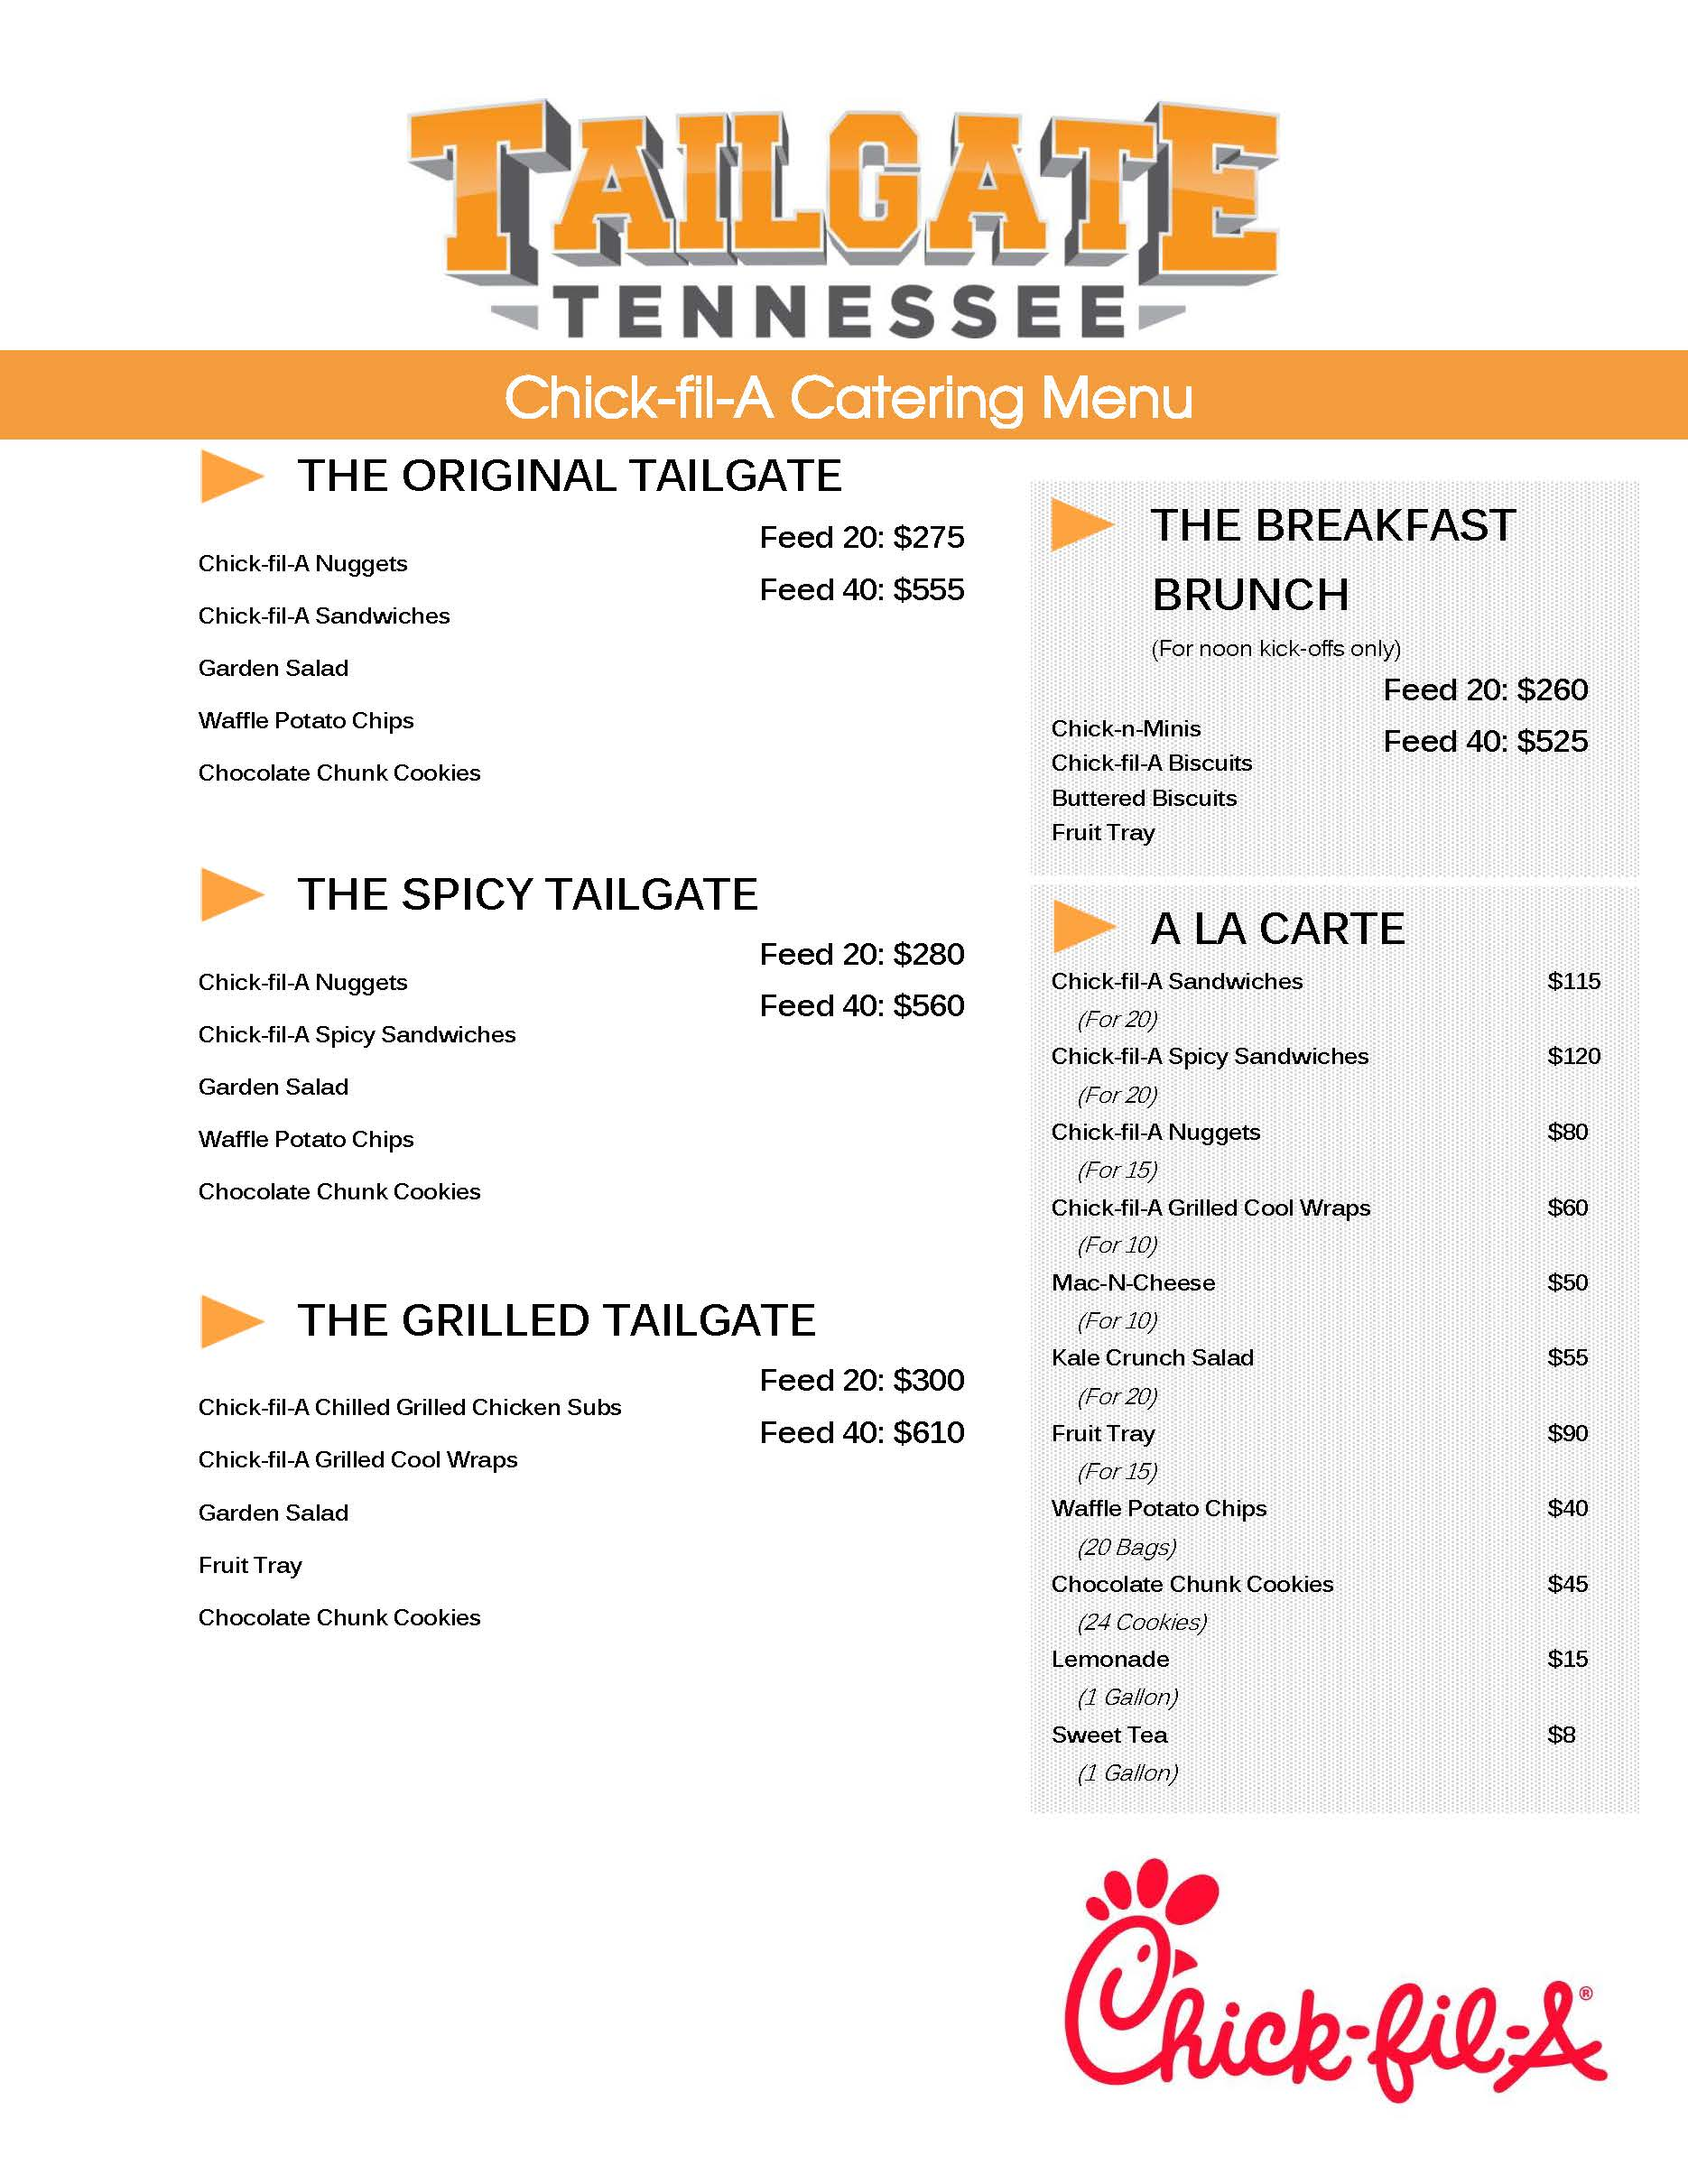 Chick-fil-A Full Tailgate Meals